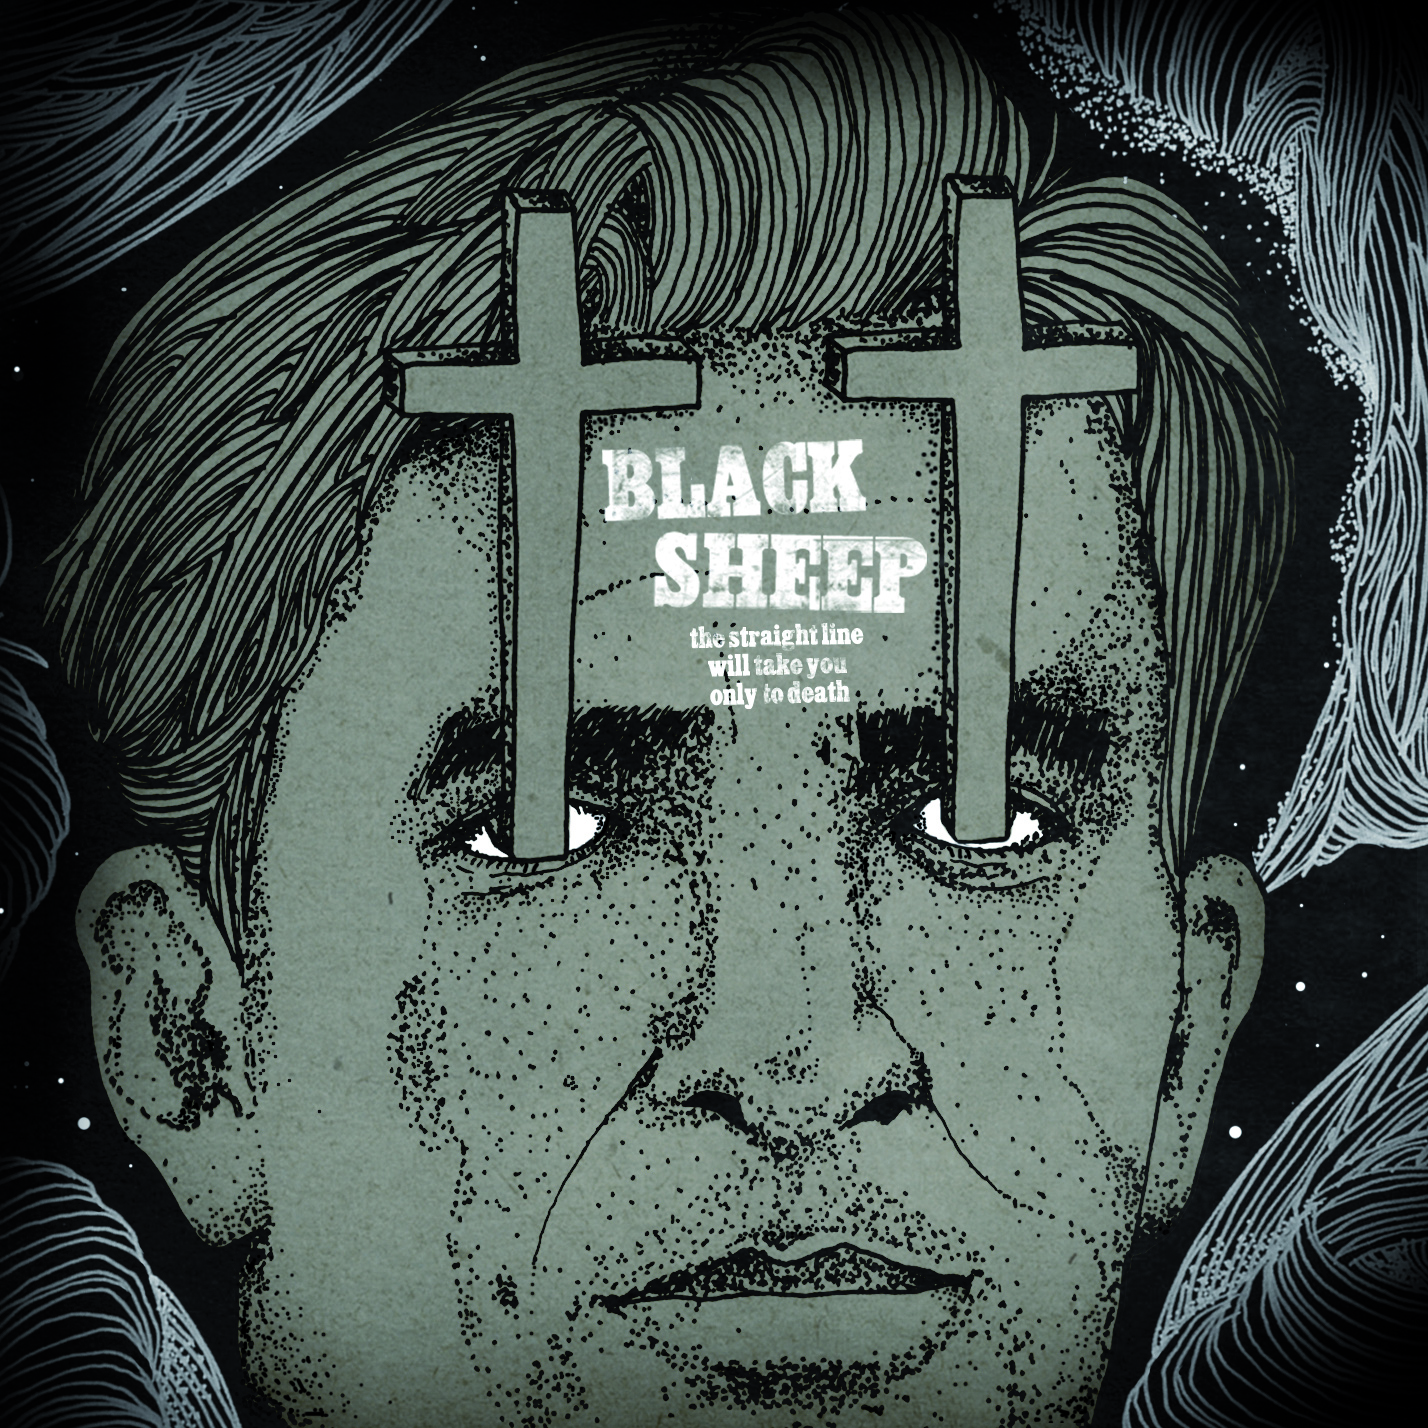 Black Sheep - the straight line will take you only to death